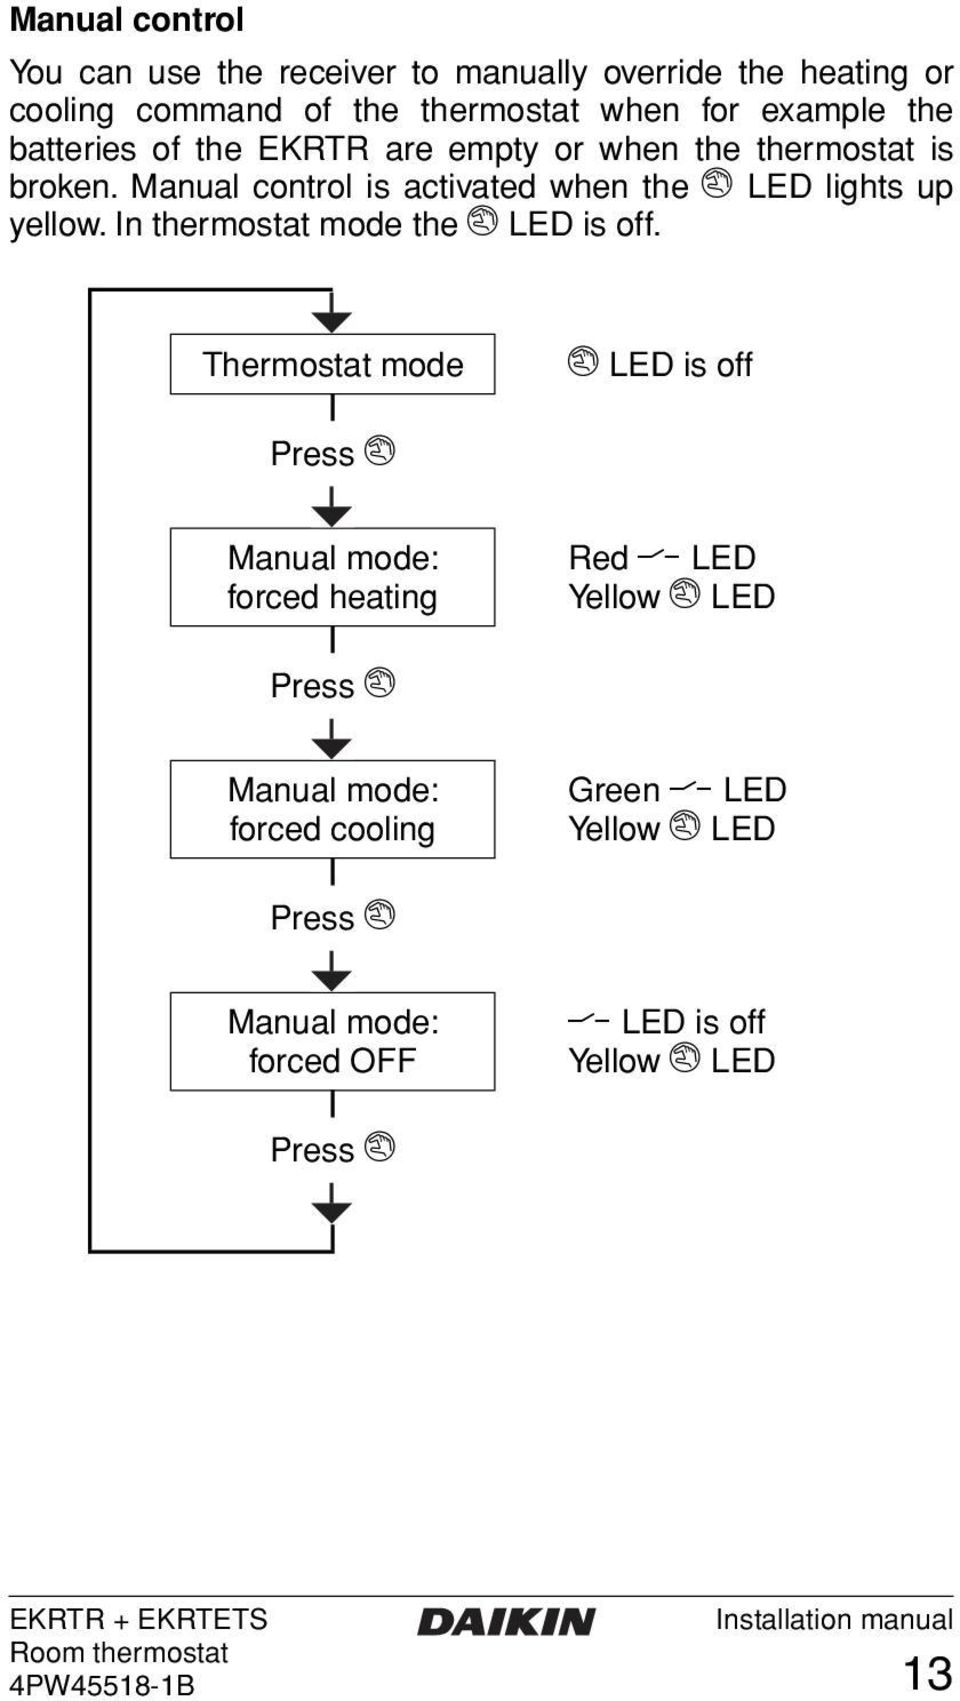 Manual control is activated when the è LED lights up yellow. In thermostat mode the è LED is off.